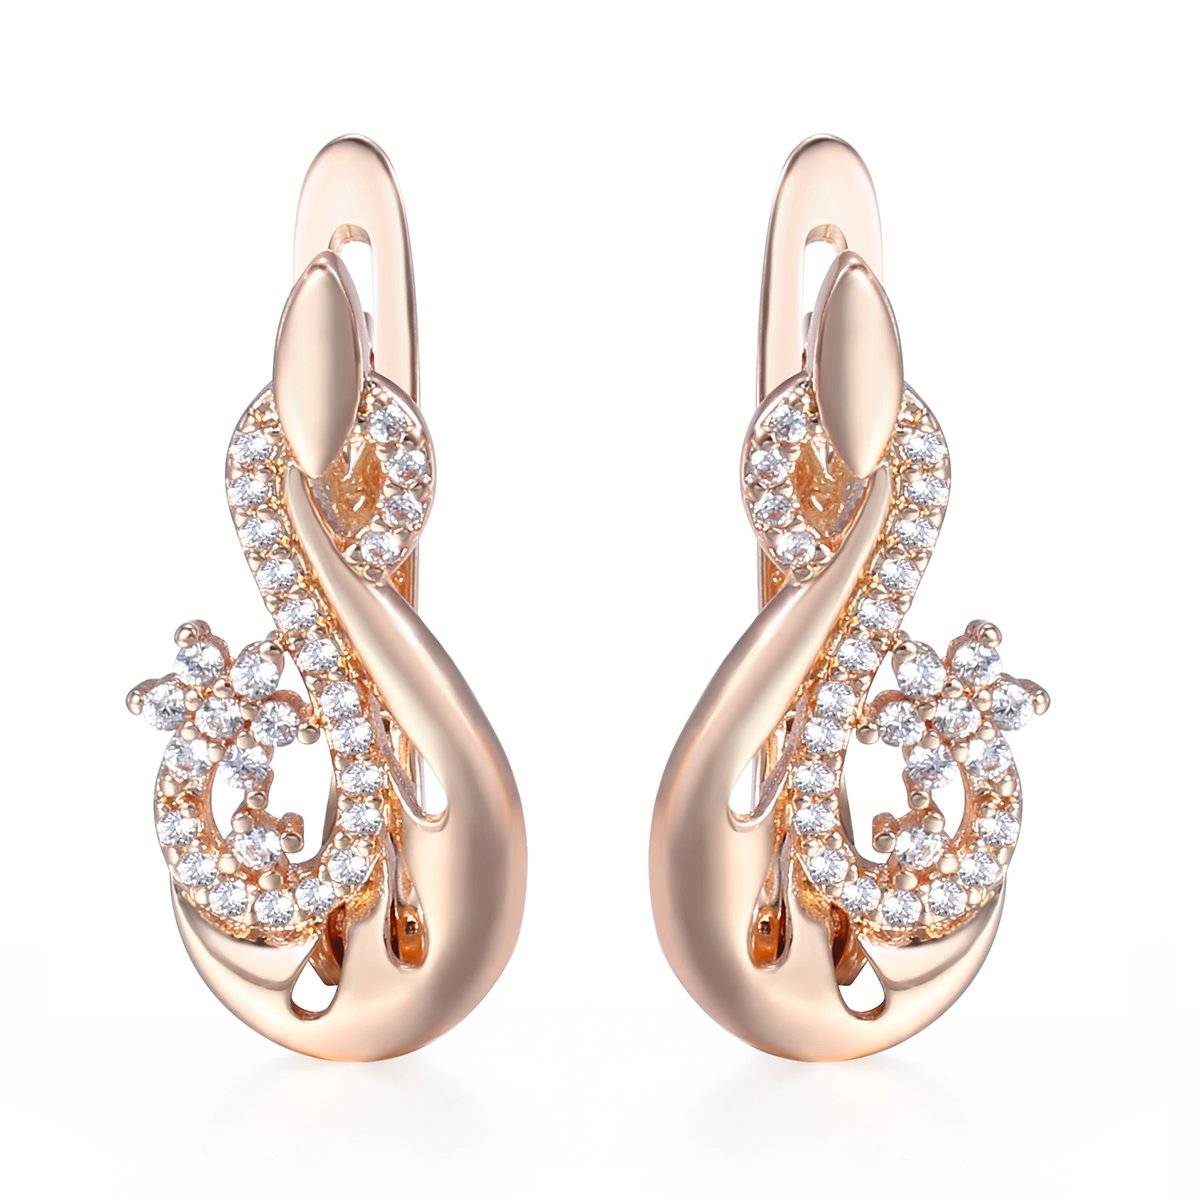 0024b1d4e Davieslee Paved Clear Cubic Zirconia CZ Flower Stud Earrings For Women 585  Rose Gold Plated Fashion Jewellery: Amazon.co.uk: Jewellery